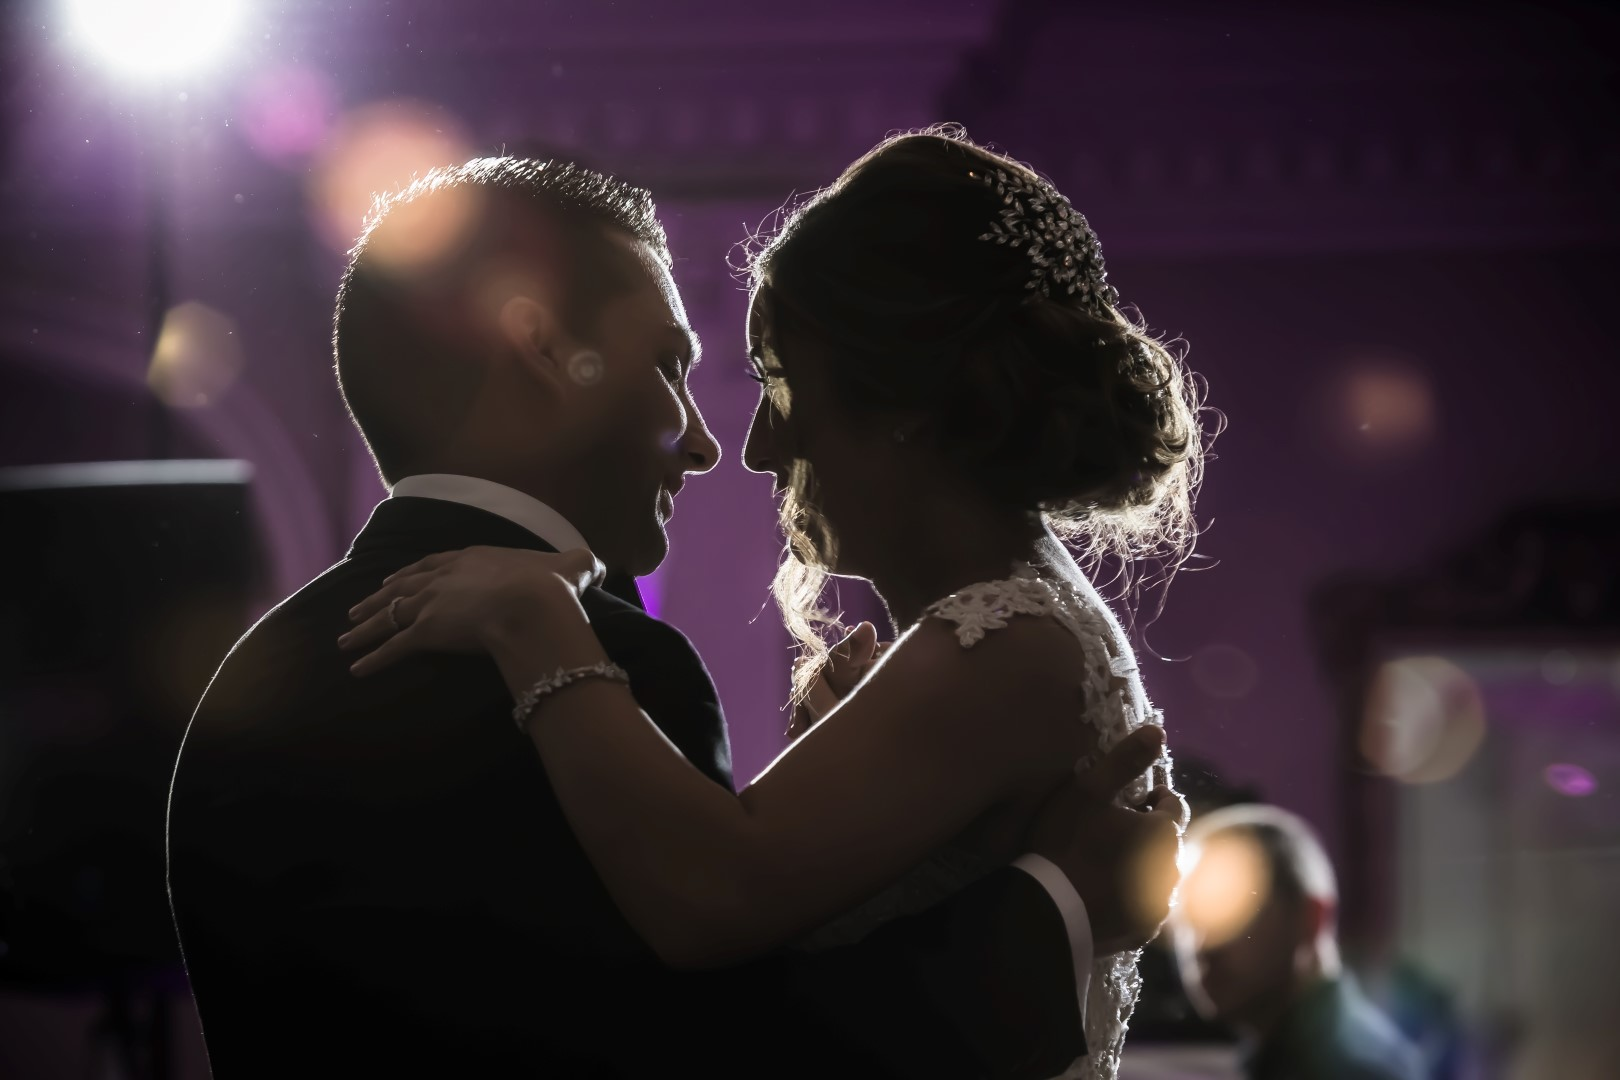 A Couple's First Dance Guide: How to Have Fun and Stay Confident